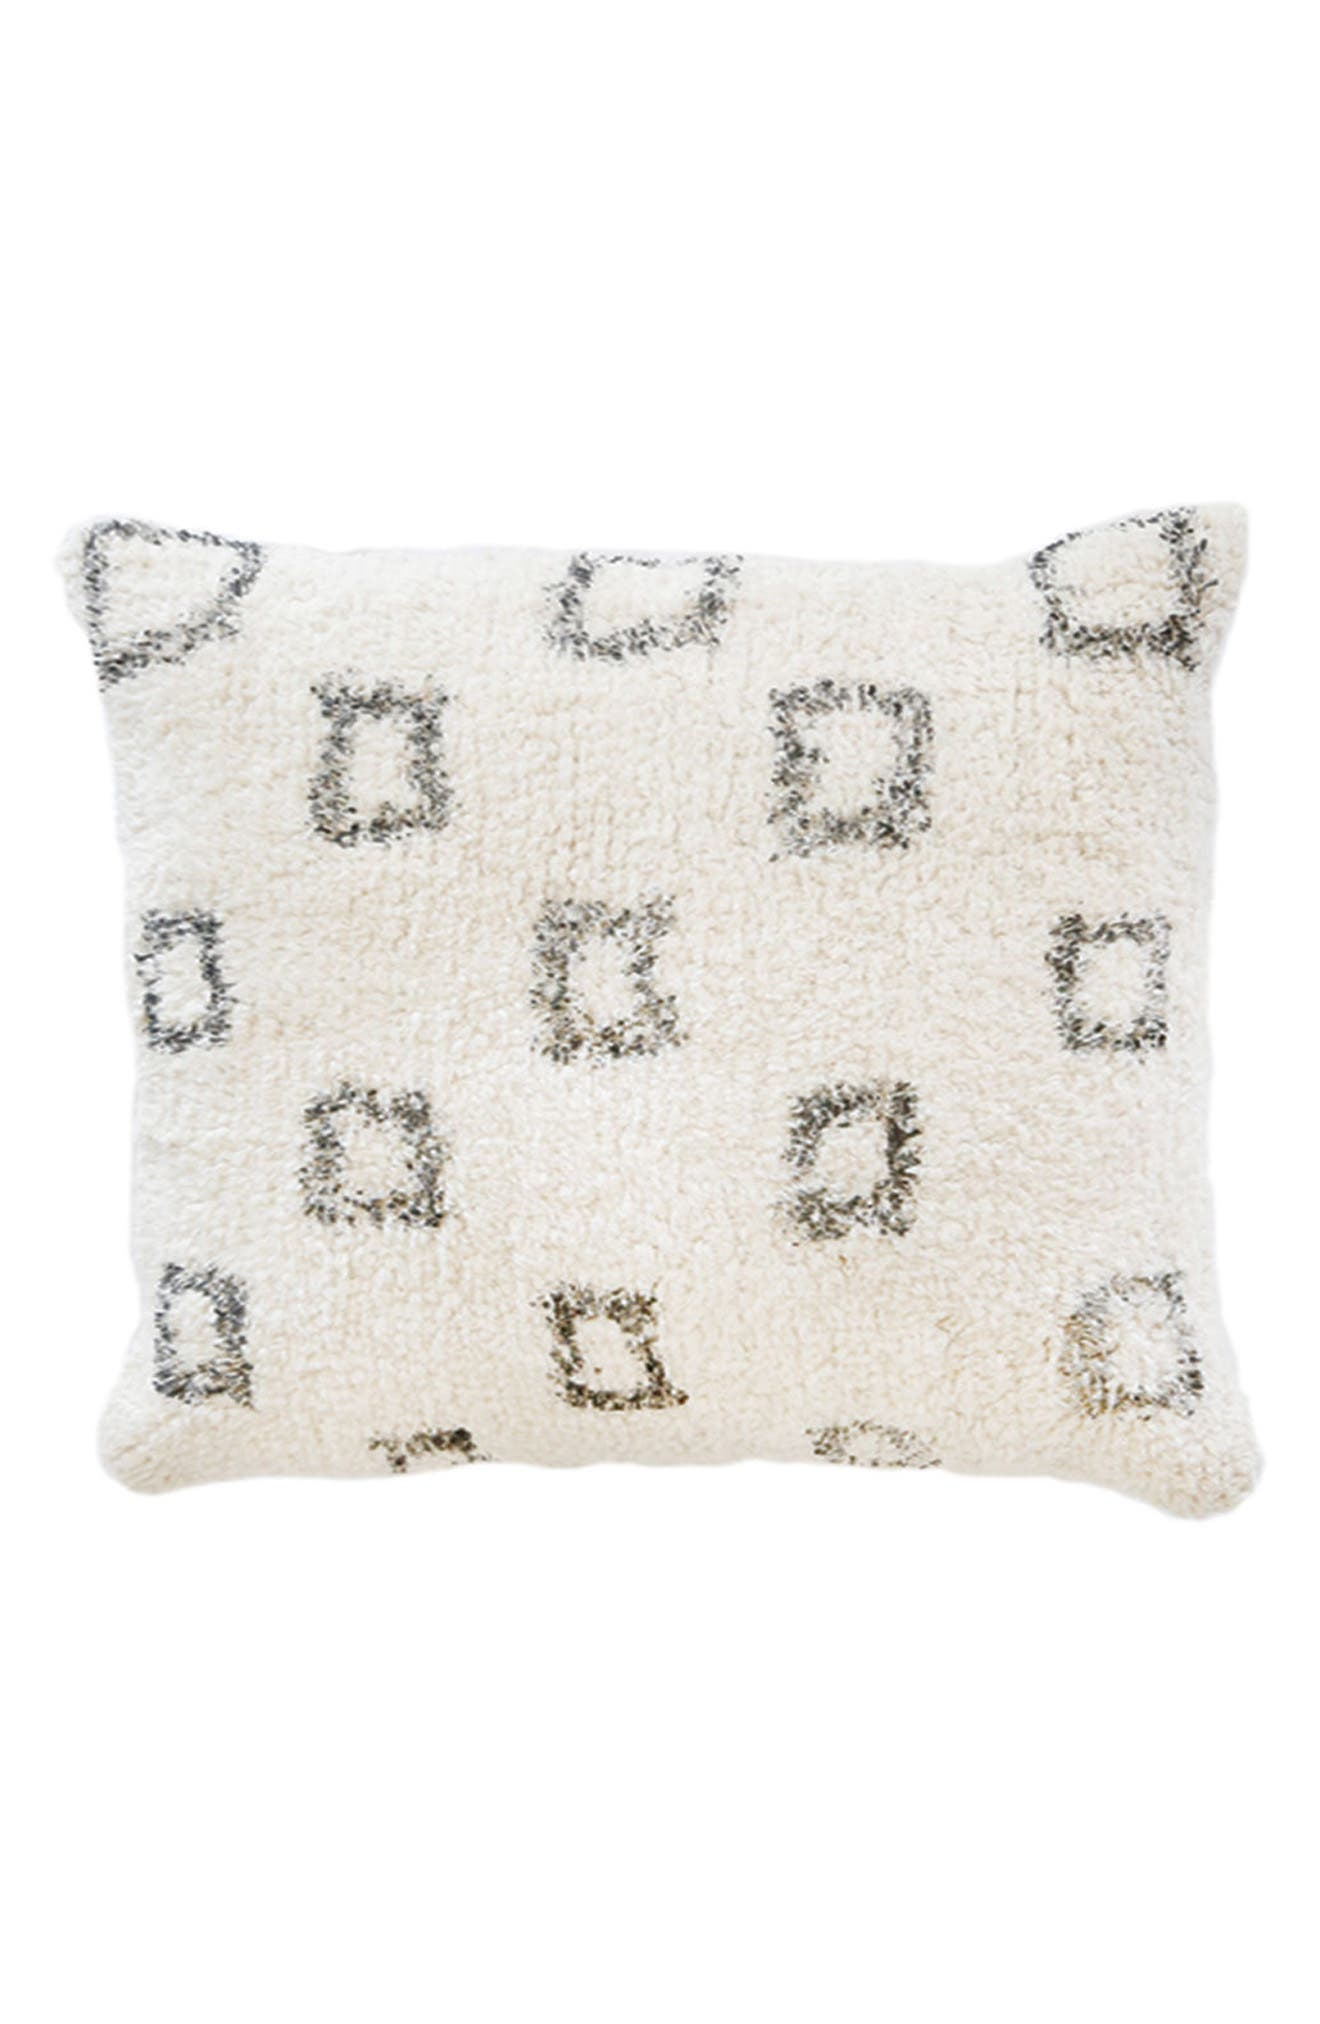 Pom Pom at Home Bowie Big Accent Pillow